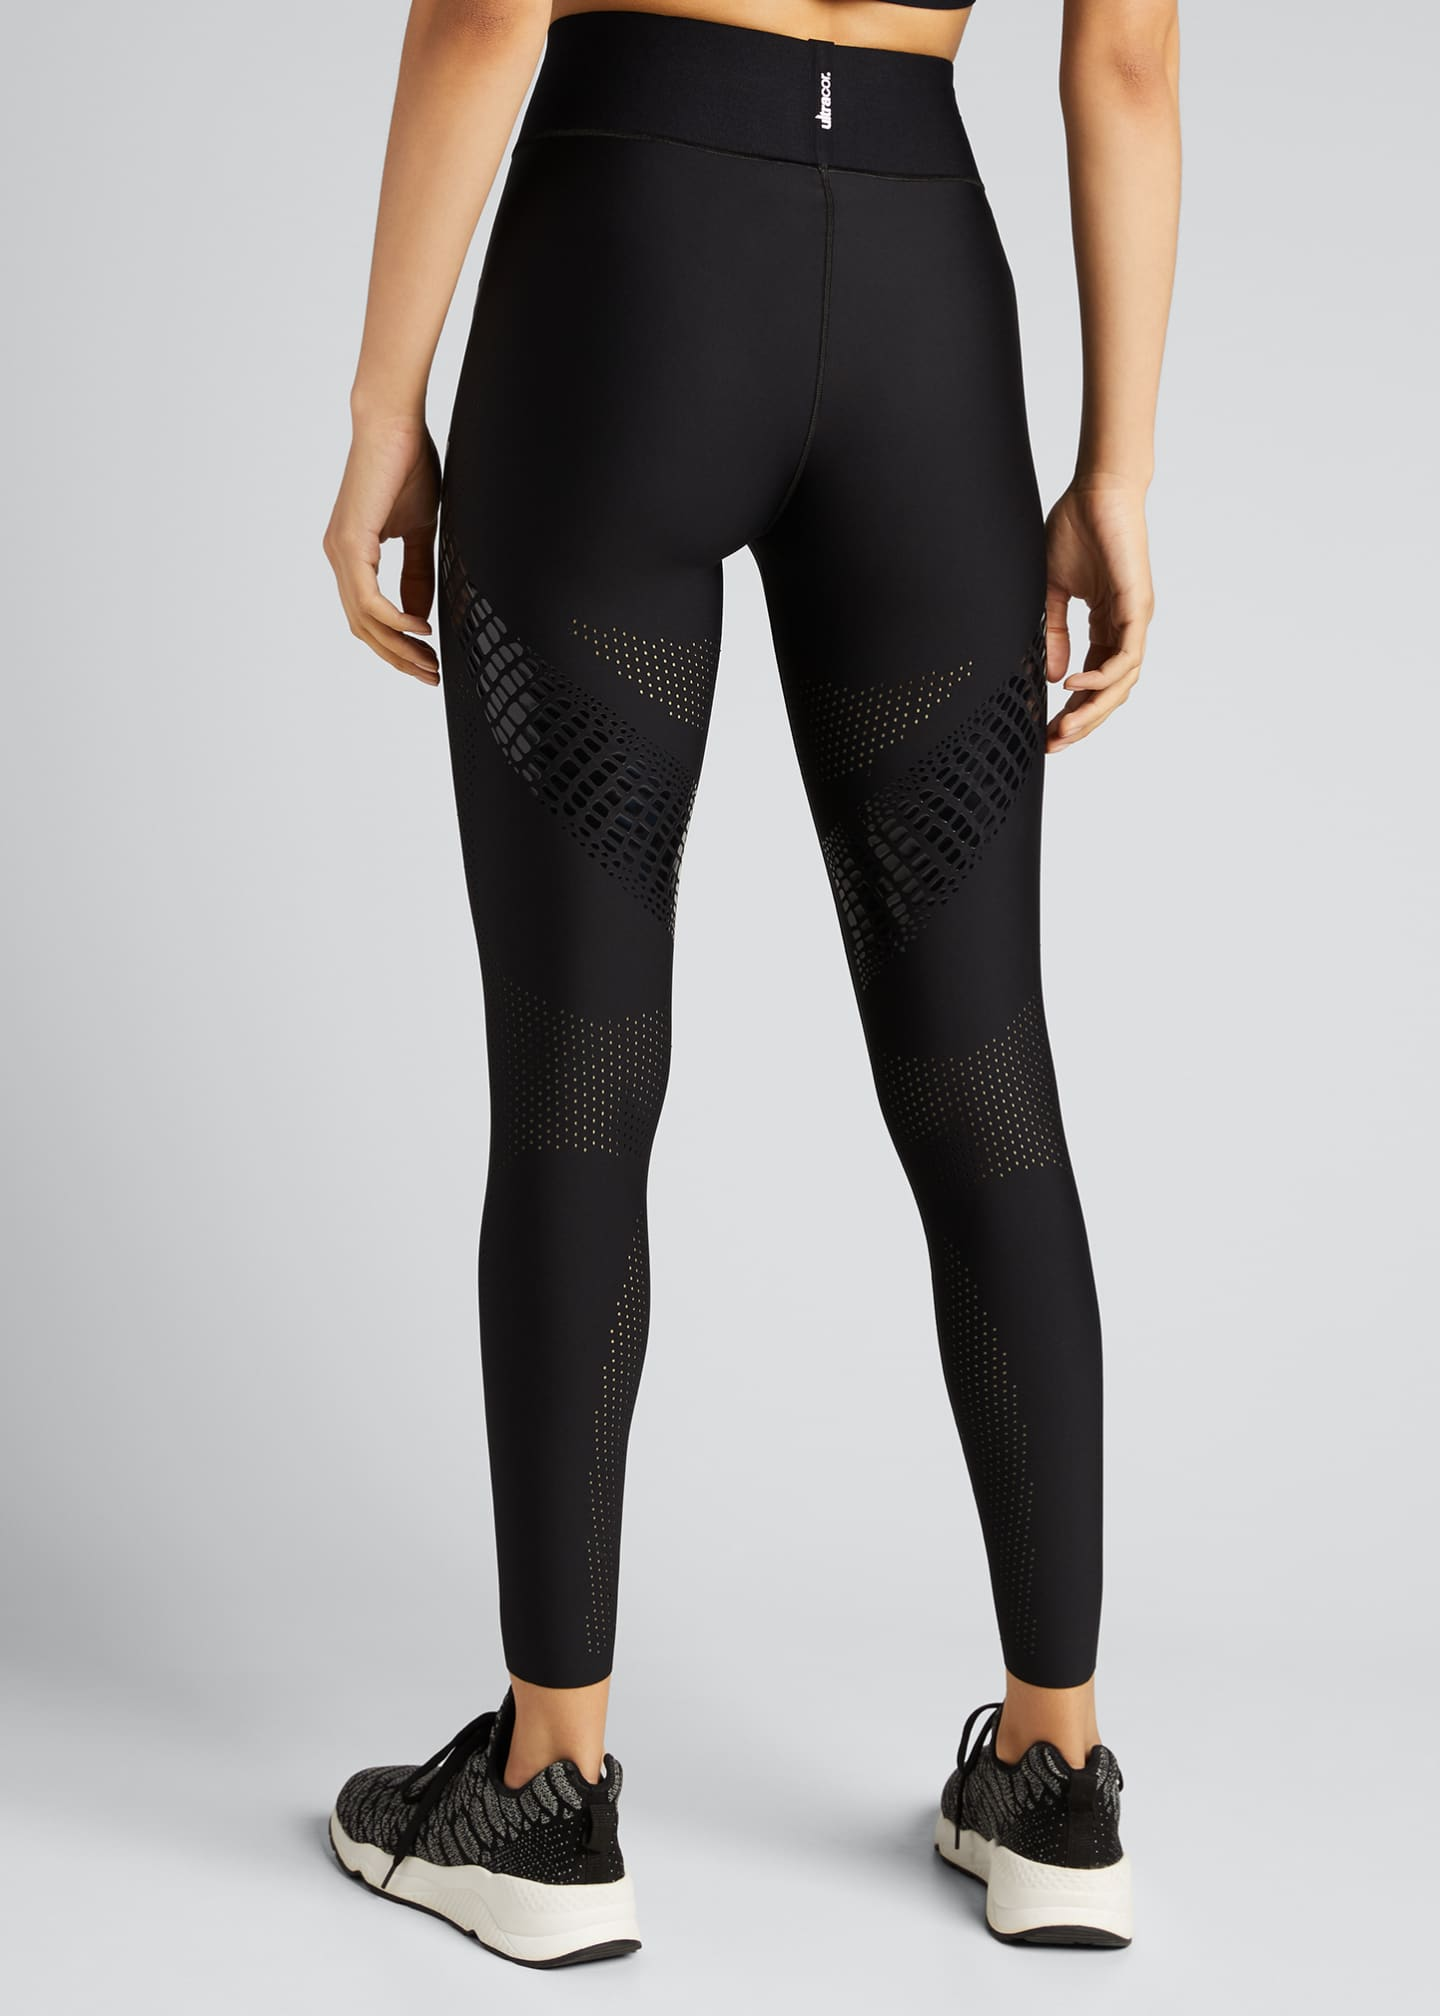 Image 2 of 5: Croc Palisades Ultra-High Leggings